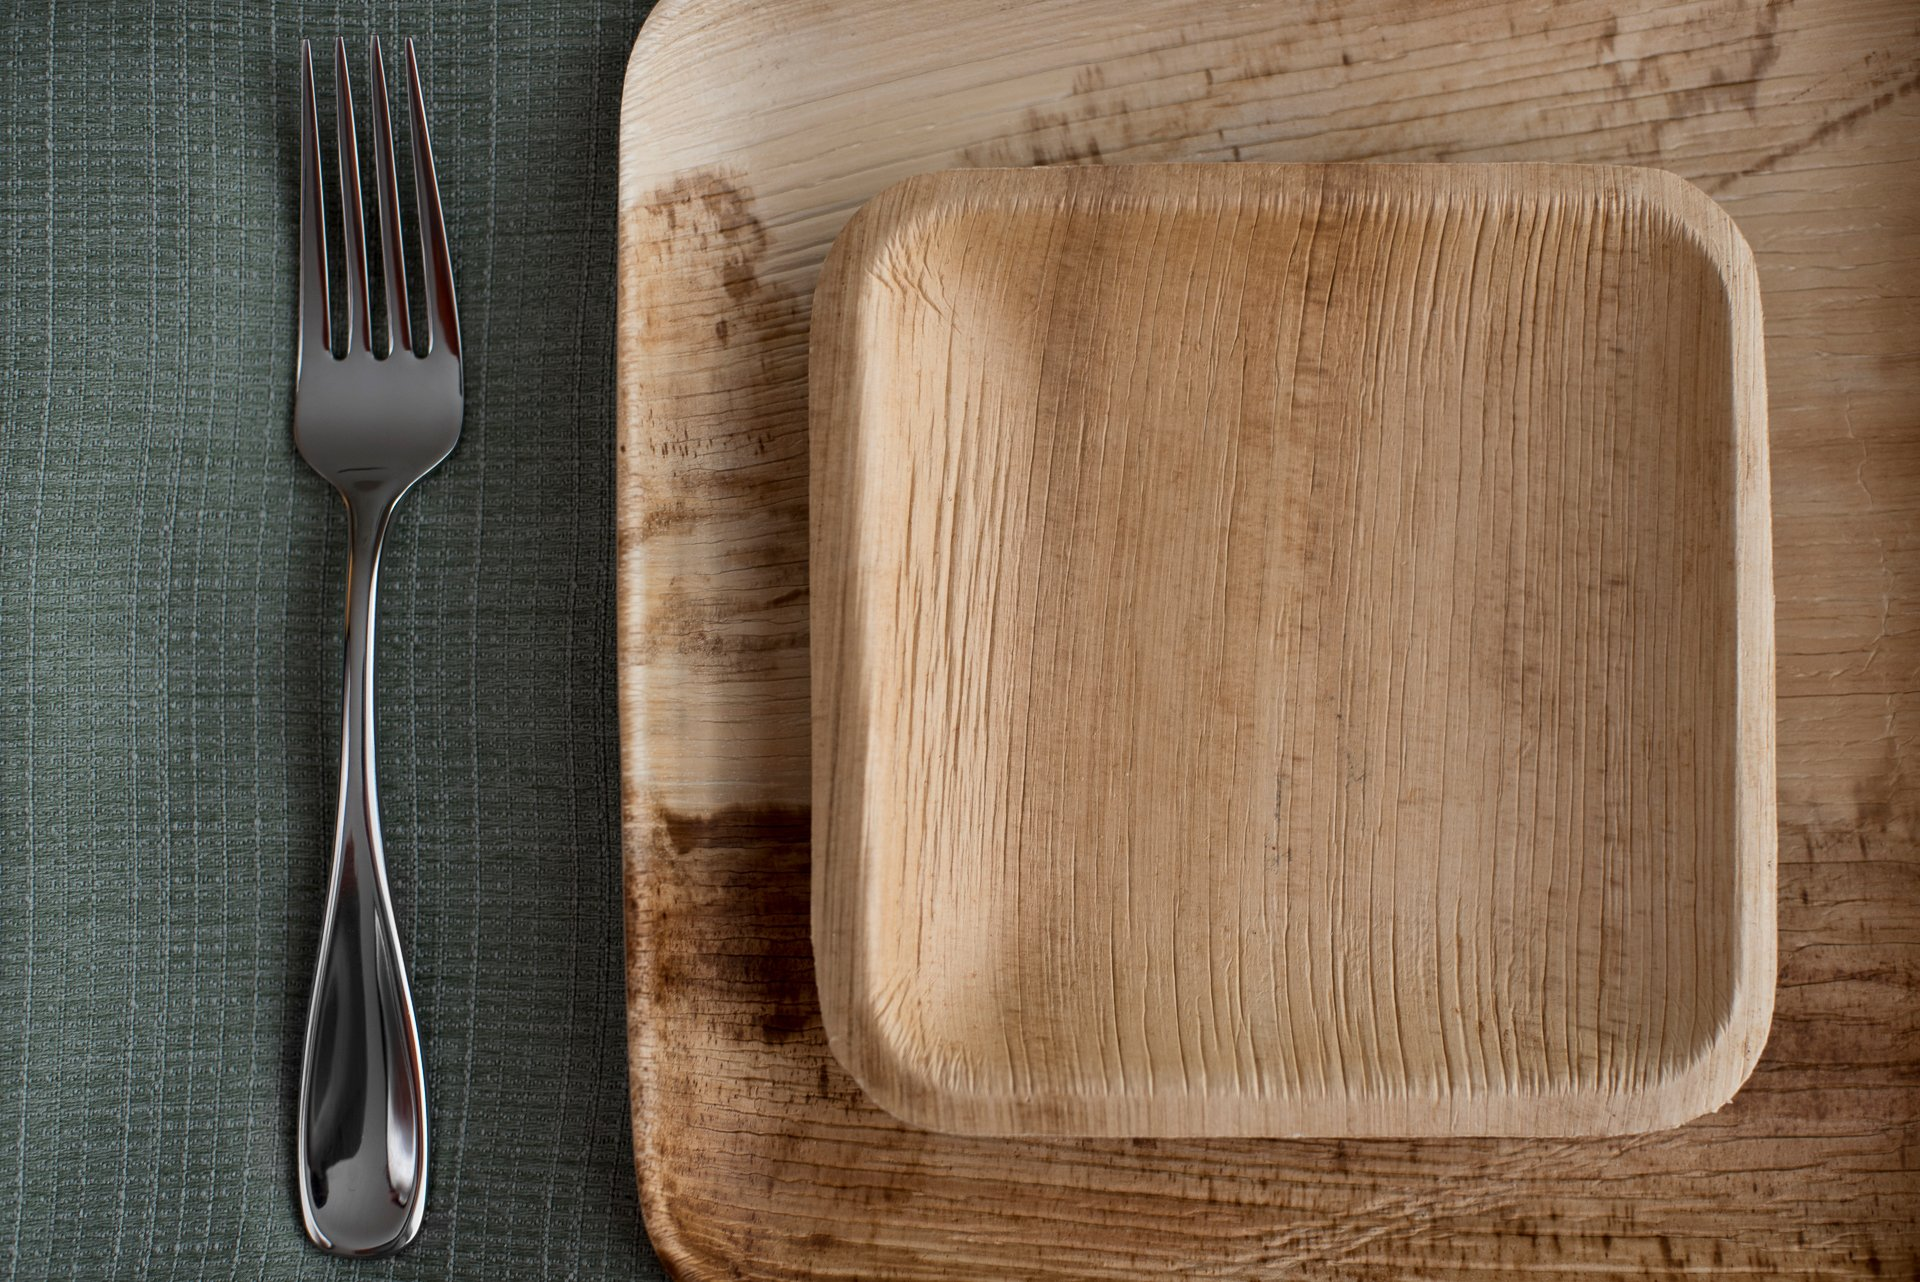 """9"""" Square Palm Leaf Plates - Pack of 25 - Disposable, Compostable, Natural, Tree Free, Sustainable, Eco-Friendly - Fancy Rustic Party Dinnerware and Utensils Like Wood, Bamboo by Clean Earth Goods (Image #6)"""